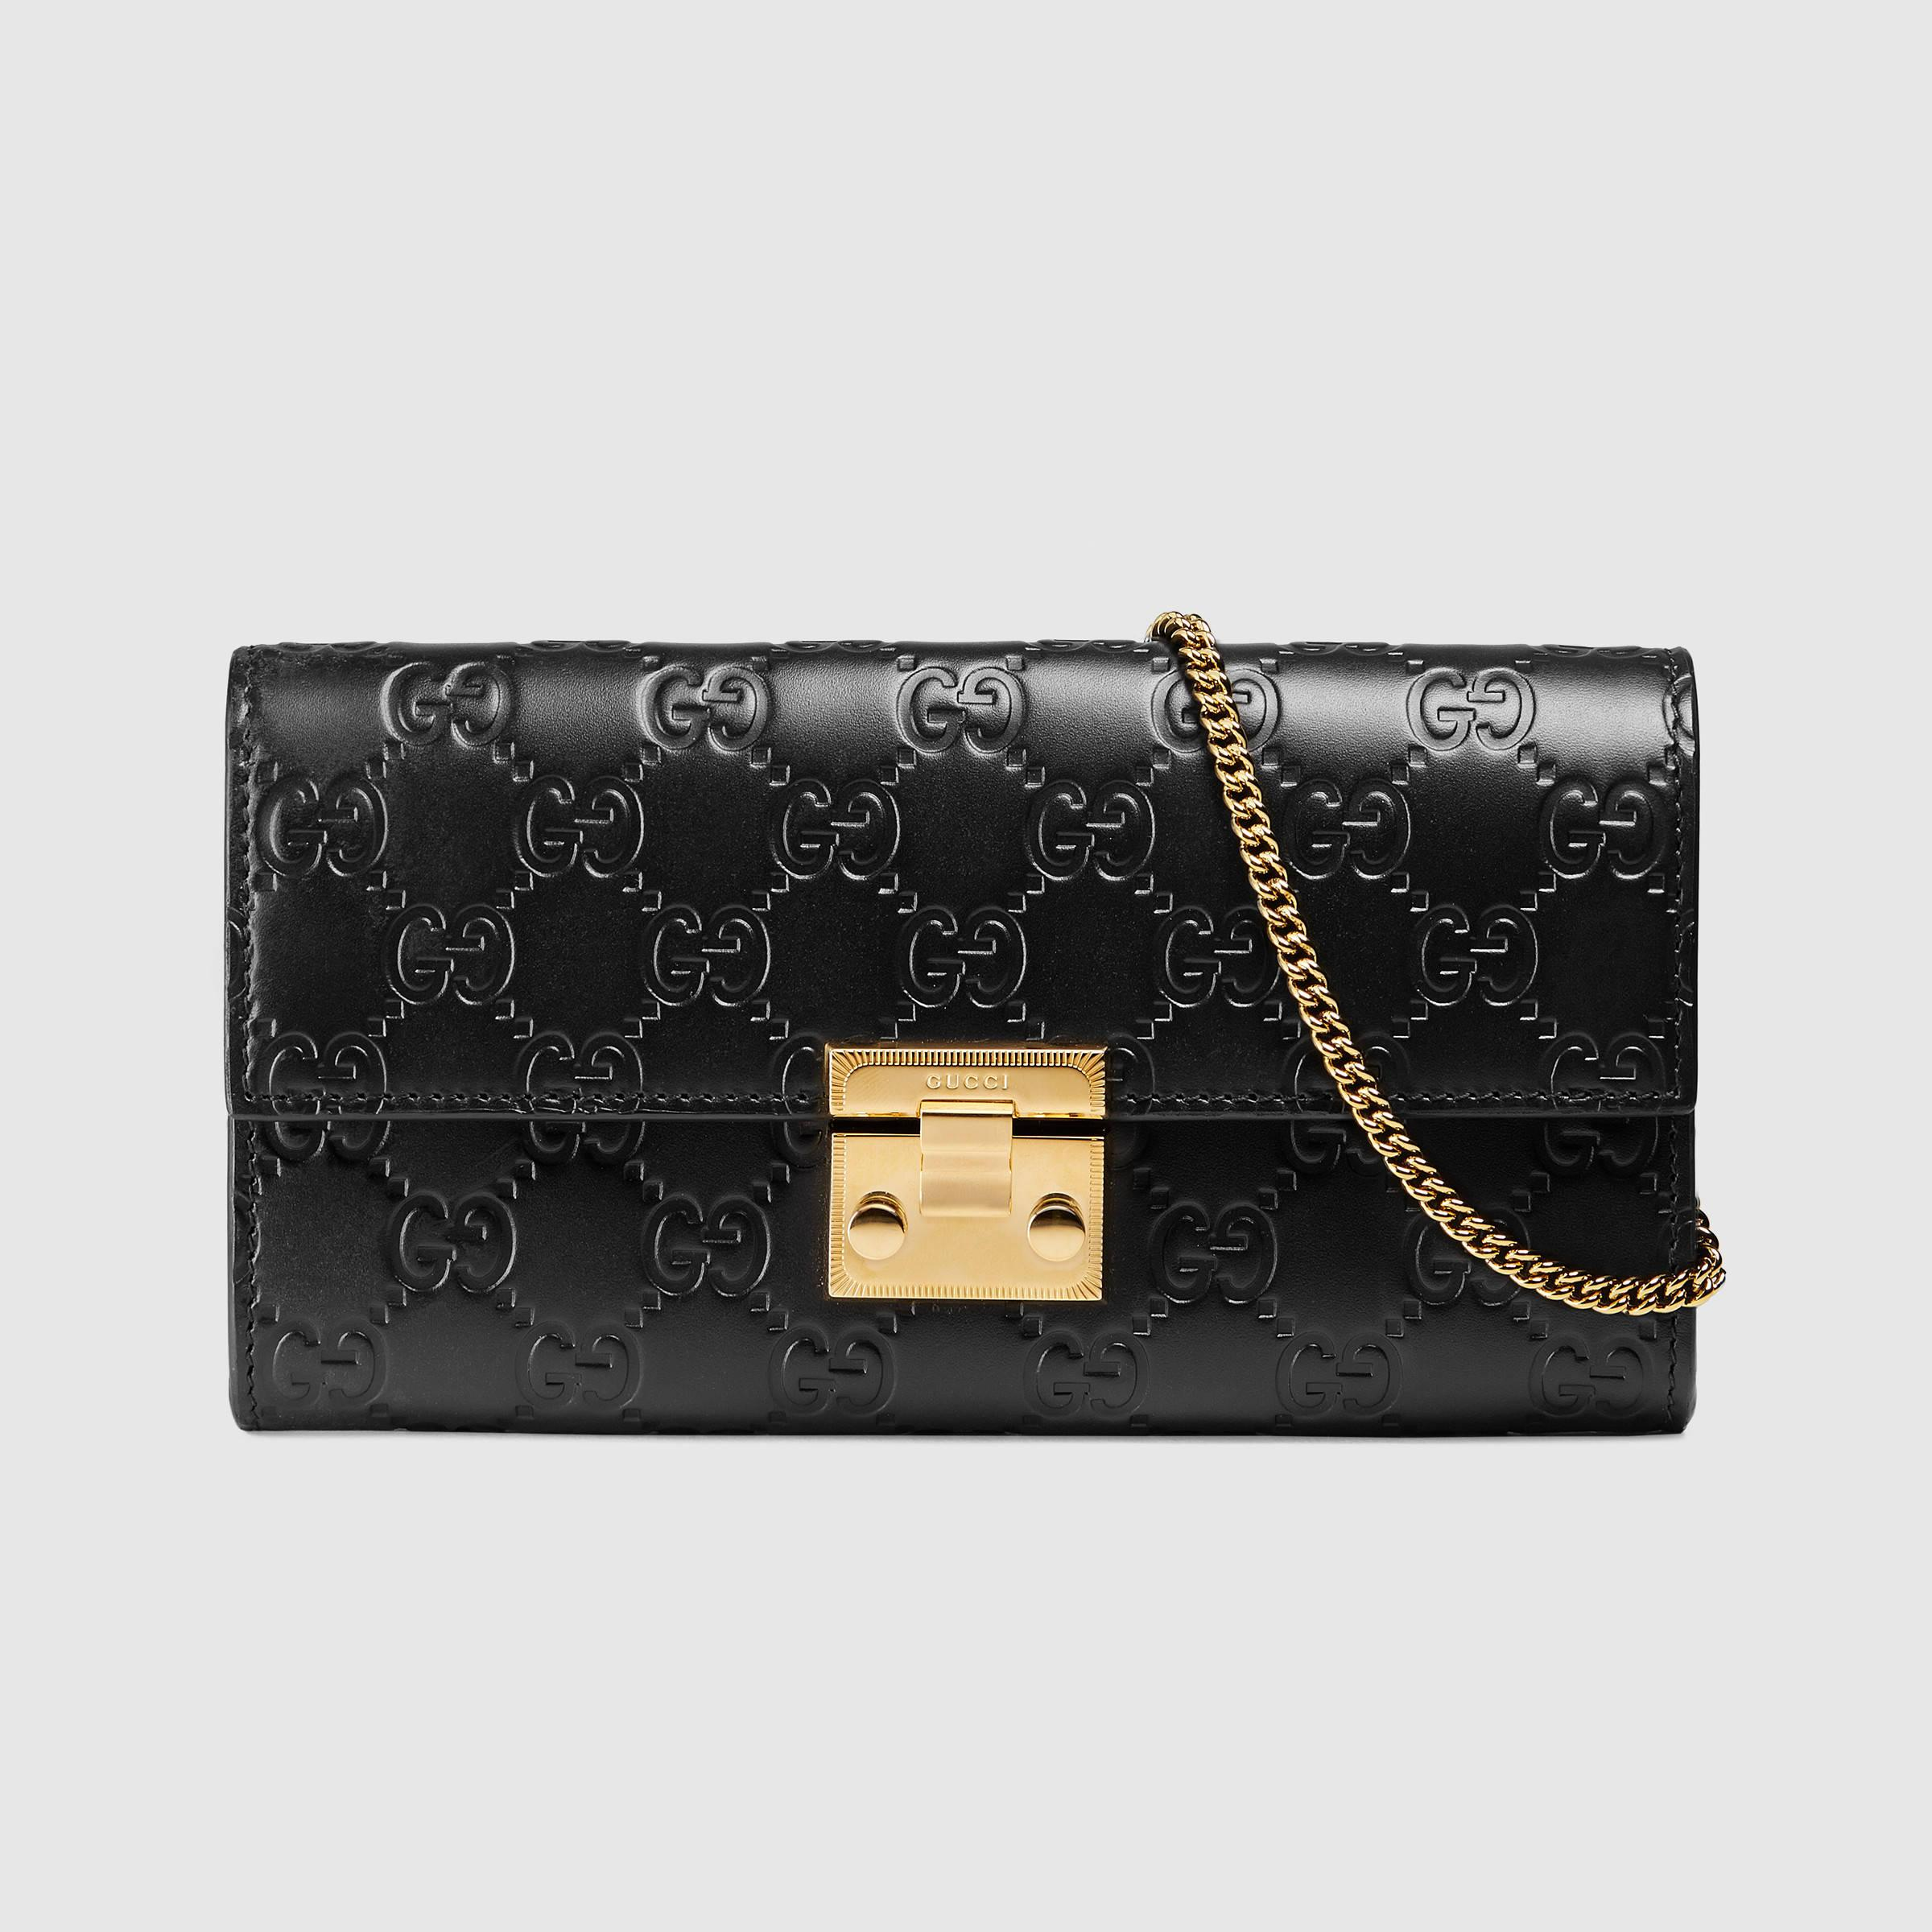 ca6133bdfd54 Gucci Ladies Wallets On Sale | Stanford Center for Opportunity ...